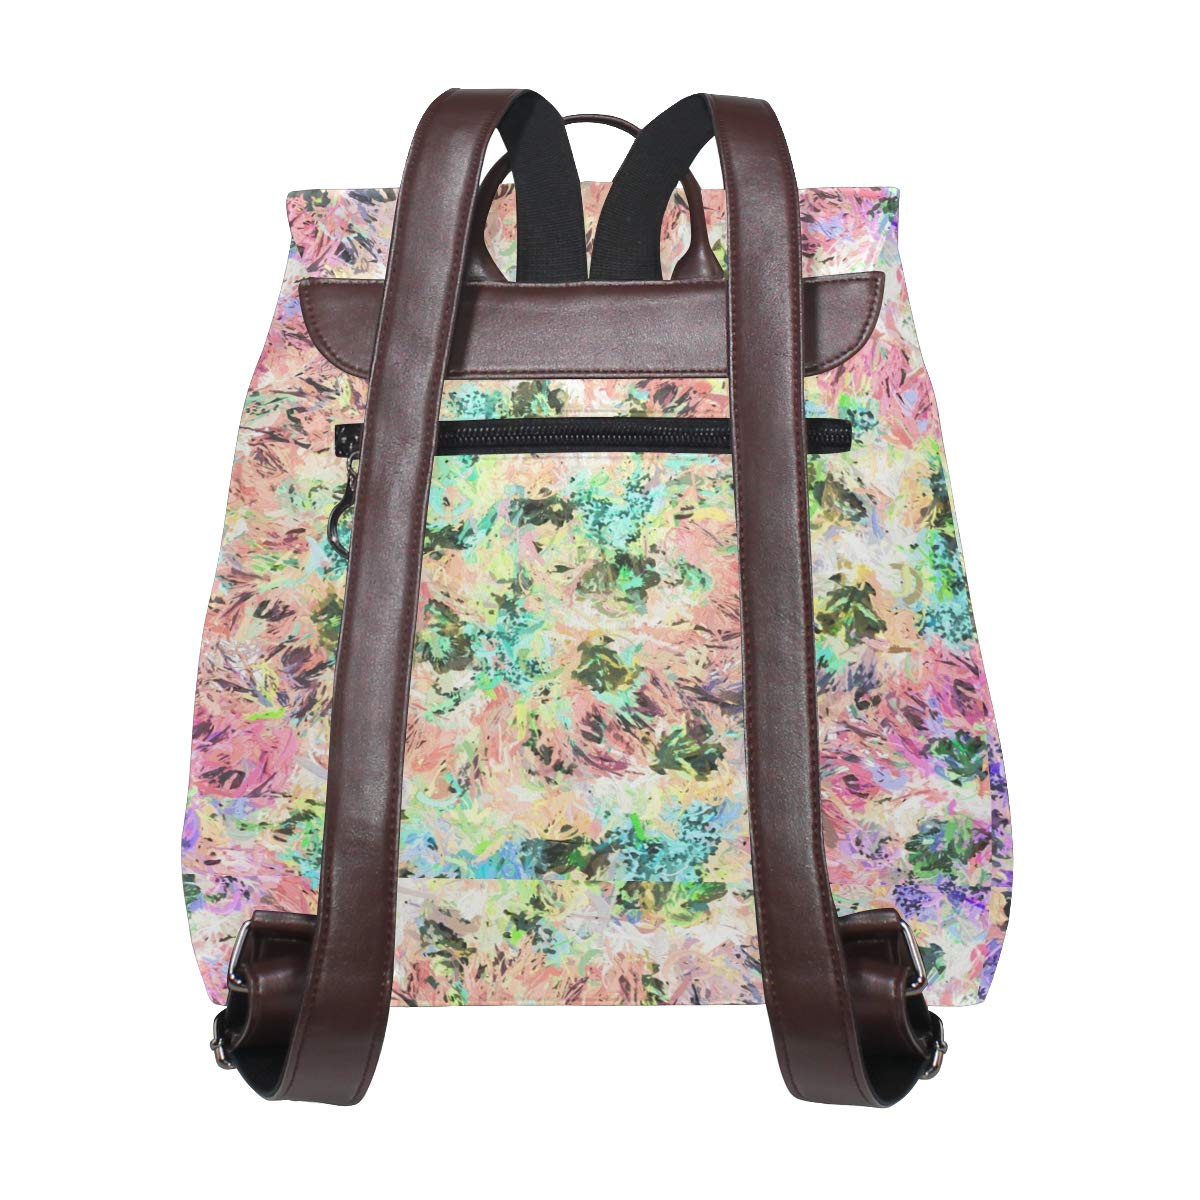 PU Leather Shoulder Bag,Abstract Flowers Leaves Pattern Backpack,Portable Travel School Rucksack,Satchel with Top Handle